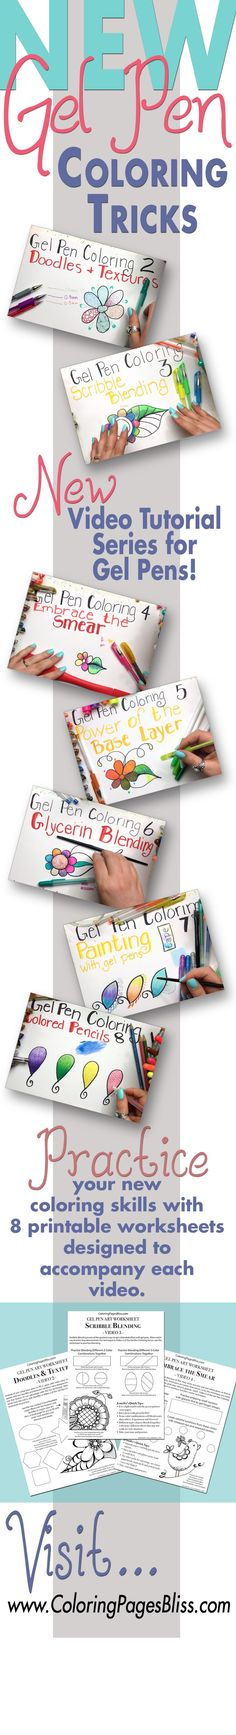 Gel Pen Coloring tips and tricks. 8 fun videos and worksheets to help you learn how to color with your gel pens. Artist Jennifer Stay has come up with new ways to use our gel pens in our coloring books and with our cards and planners. Follow along as she teaches you how to use glycerin to paint and smear beautiful blending effects with gel pens. You will be amazed at what your gel pens can do!